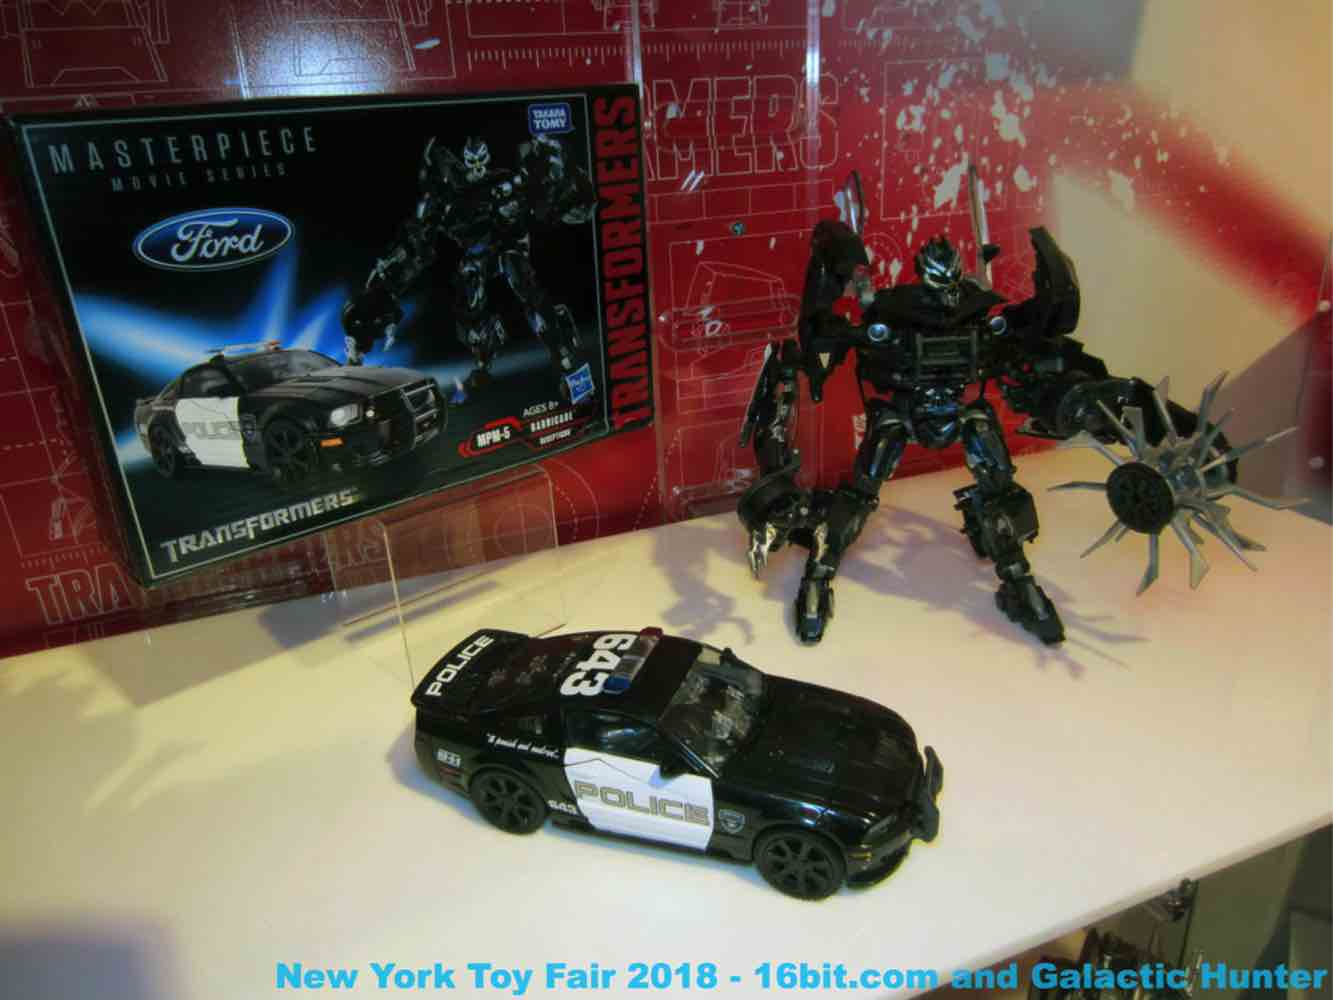 Transformers 2 toys the fallen